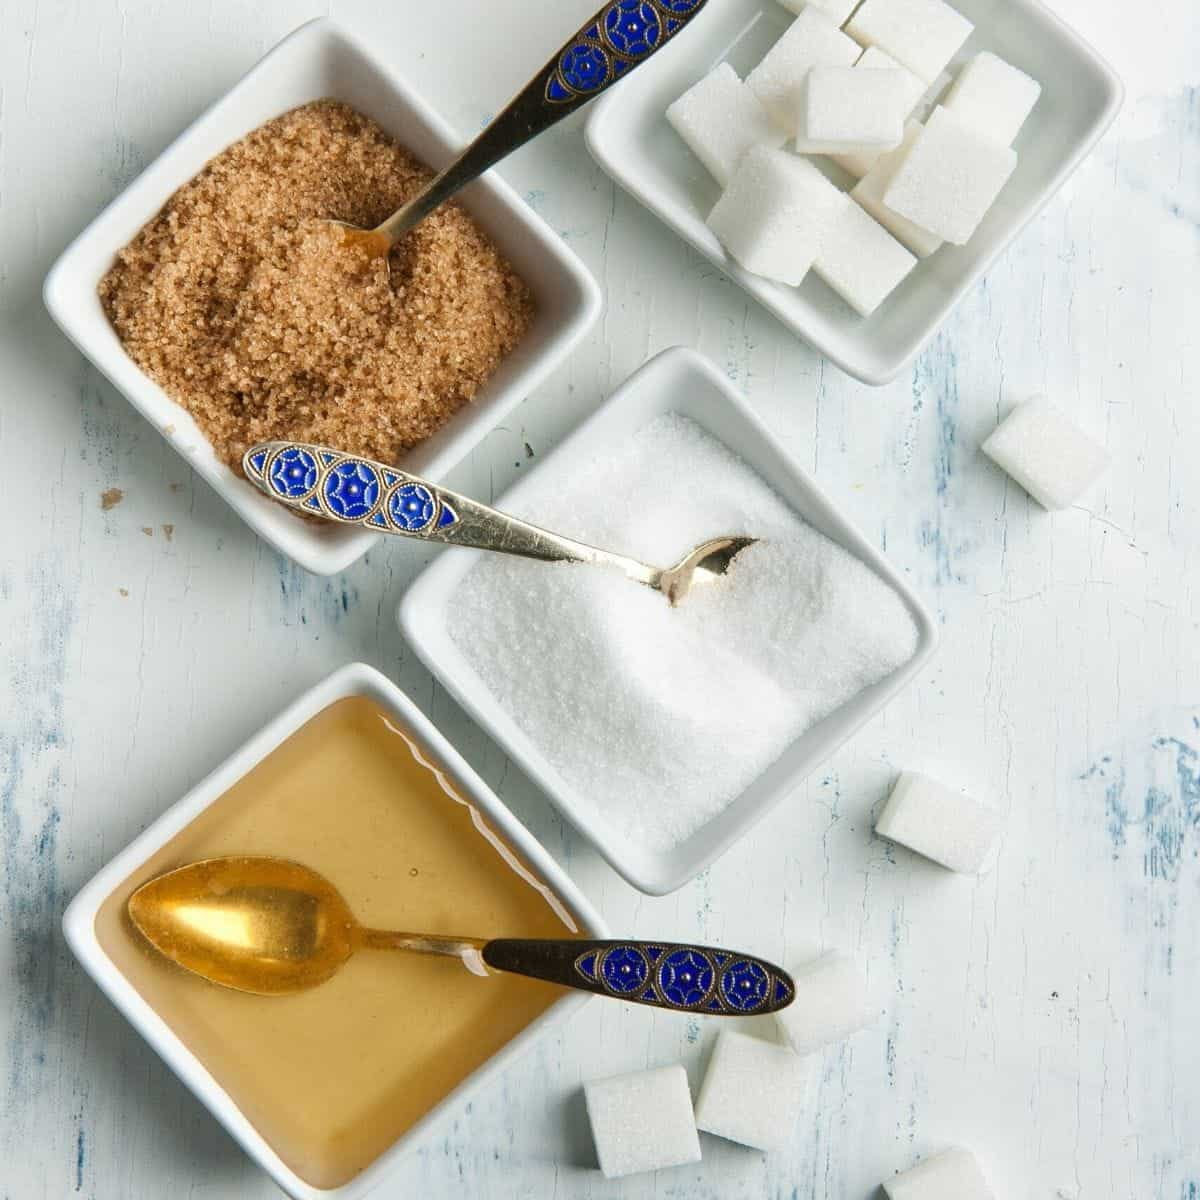 different sweeteners in dishes